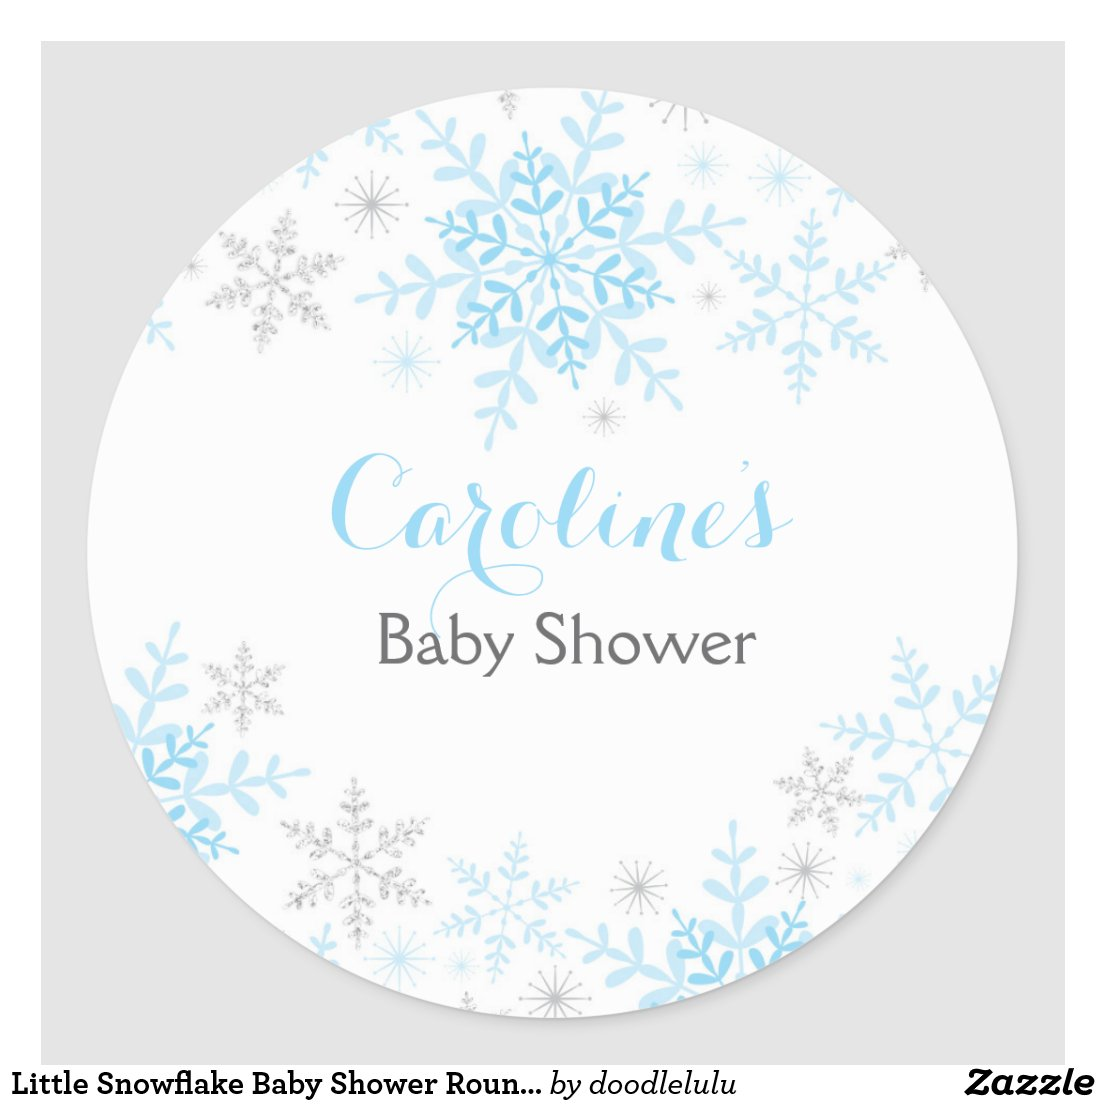 Little Snowflake Baby Shower Round Sticker